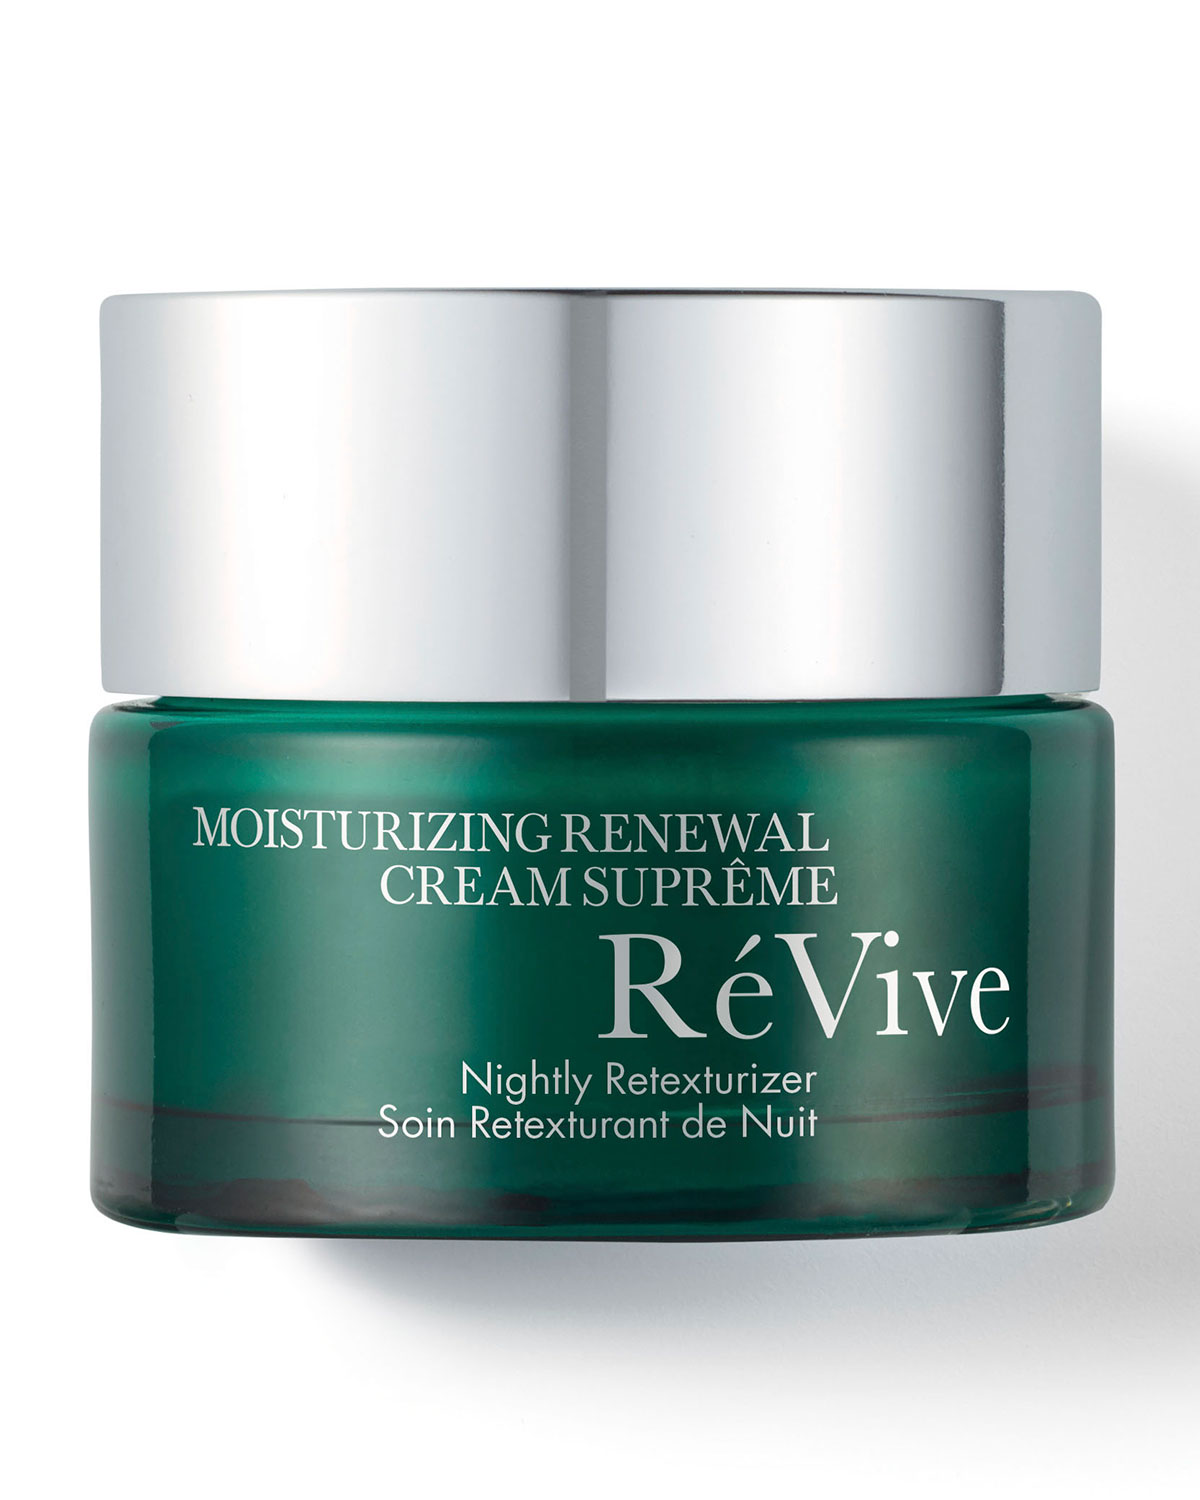 ReVive 1.7 oz. Moisturizing Renewal Cream Supreme Nightly Retexturizer